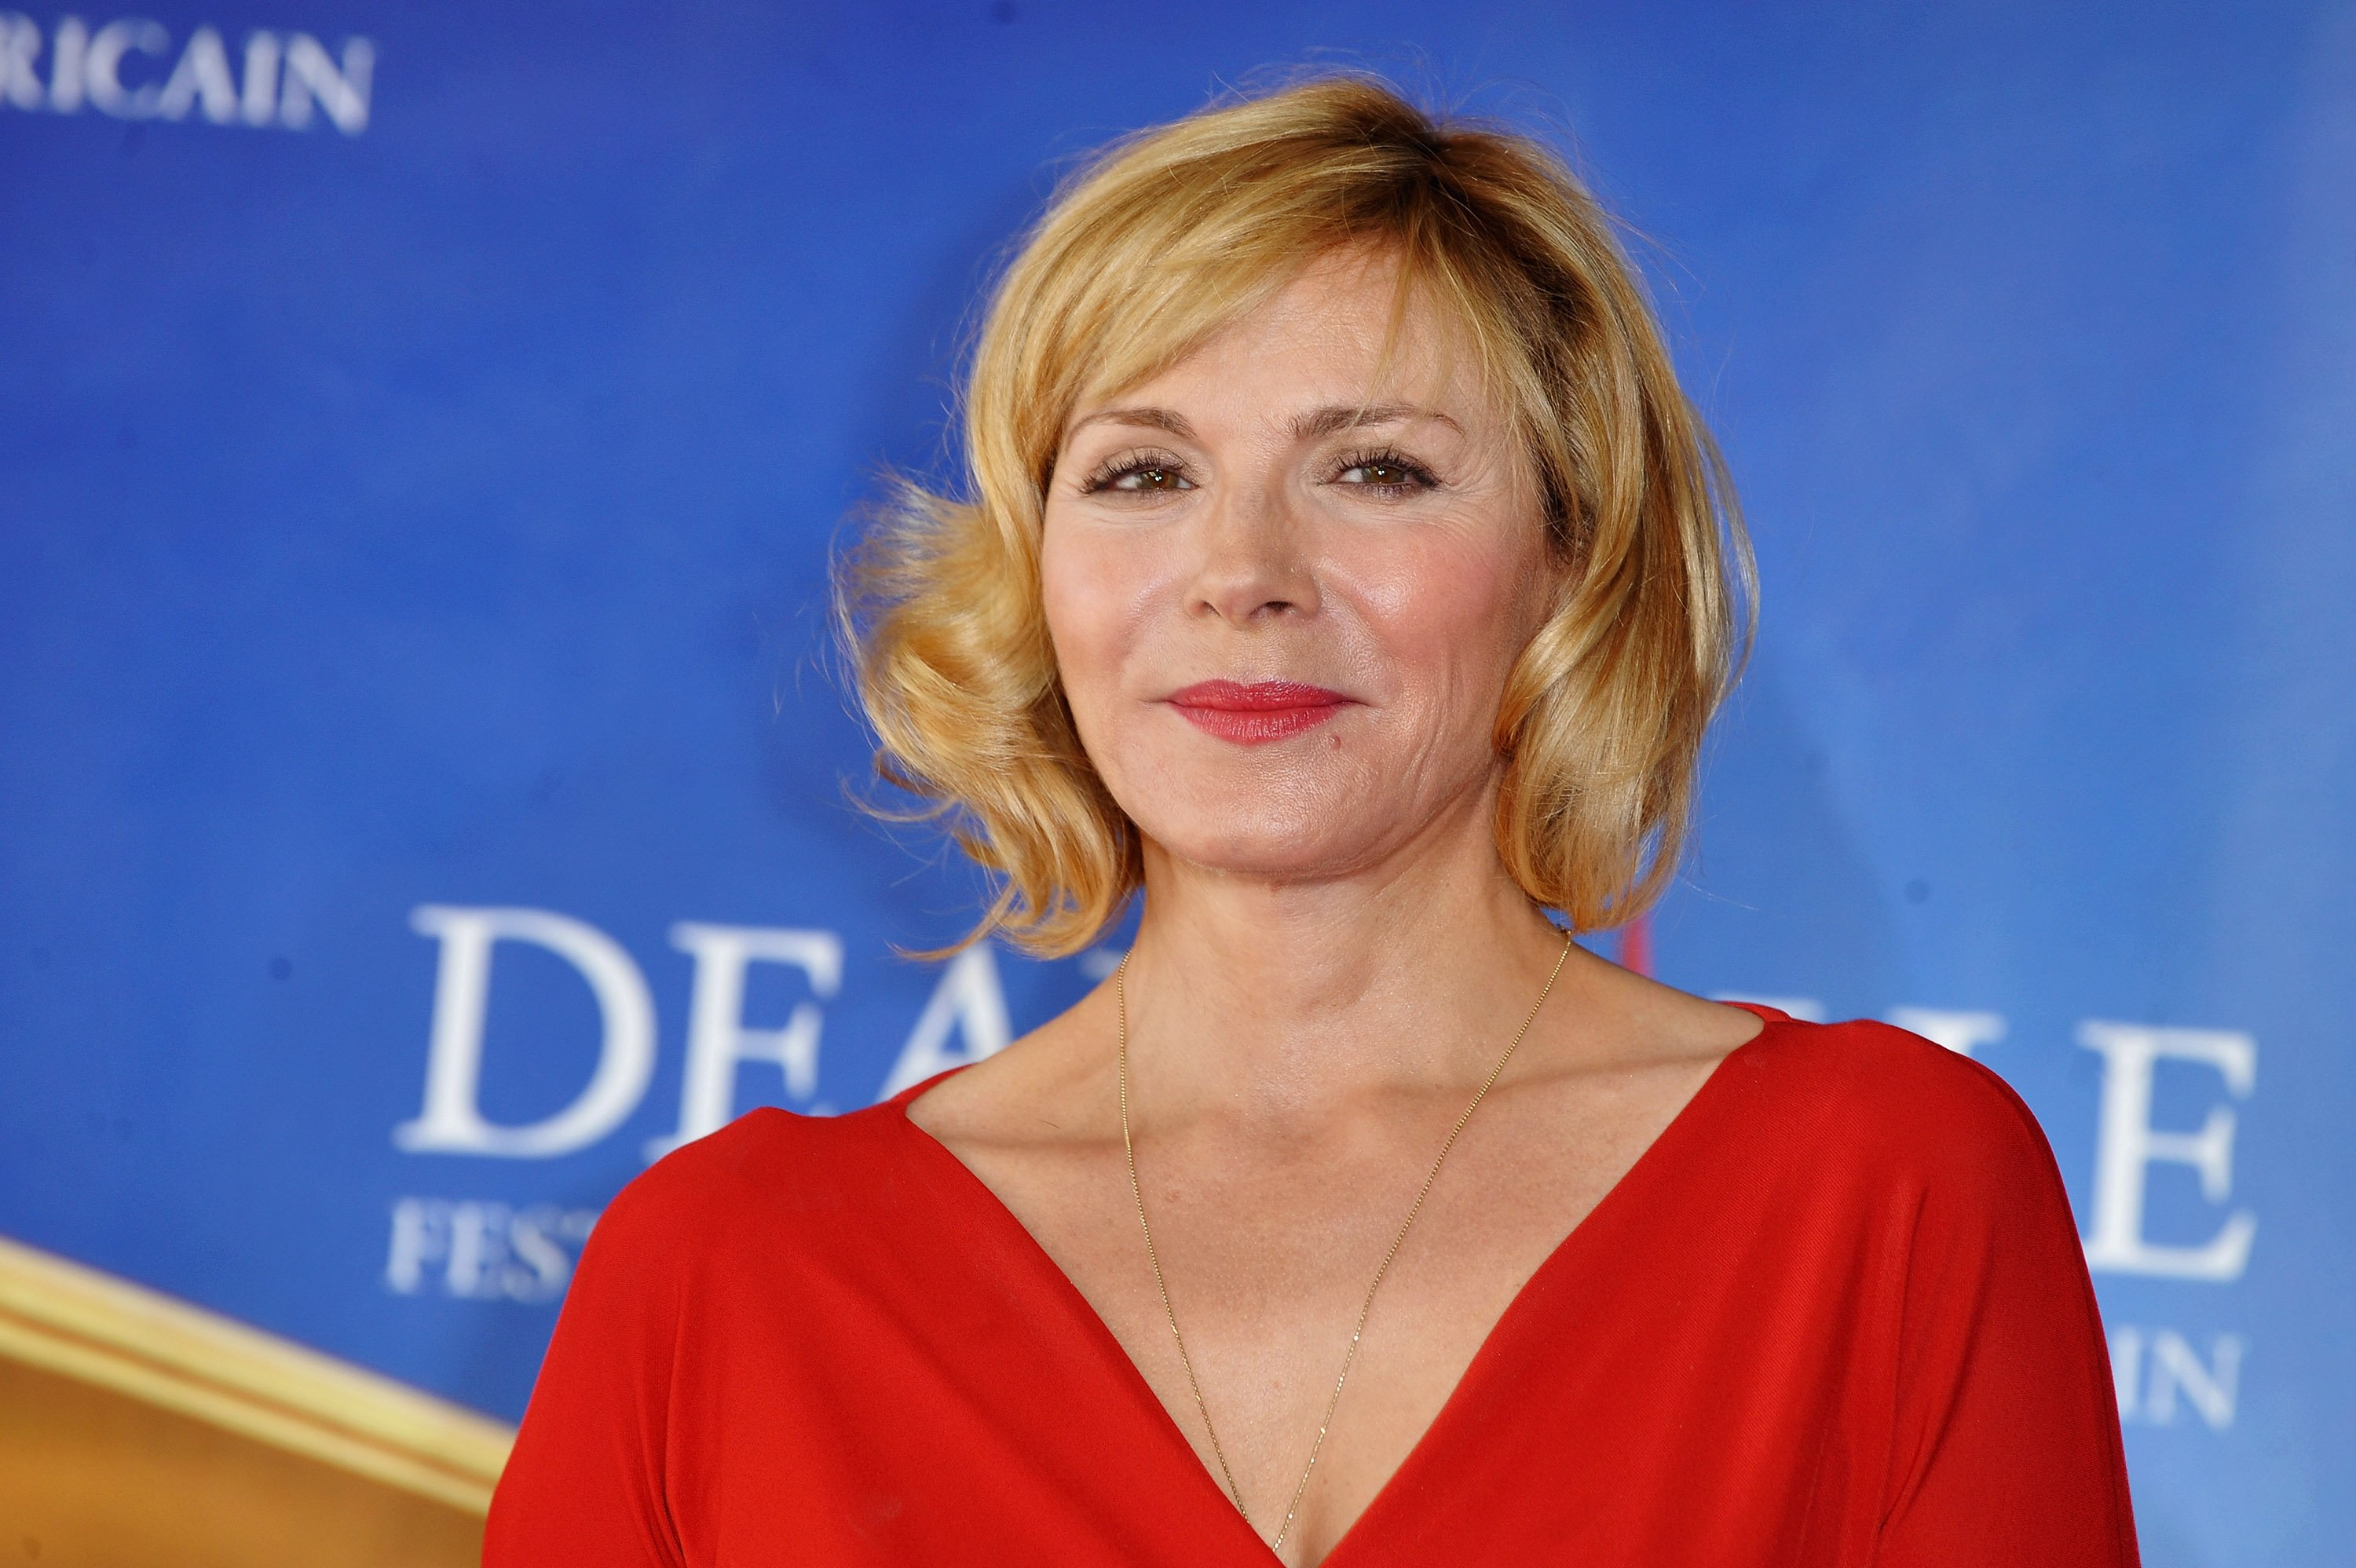 Kim Cattrall attends the photocall for the film 'Meet Monica Velour' during the 36th Deauville American Film Festival on September 11, 2010, in Deauville, France. | Source: Getty Images.